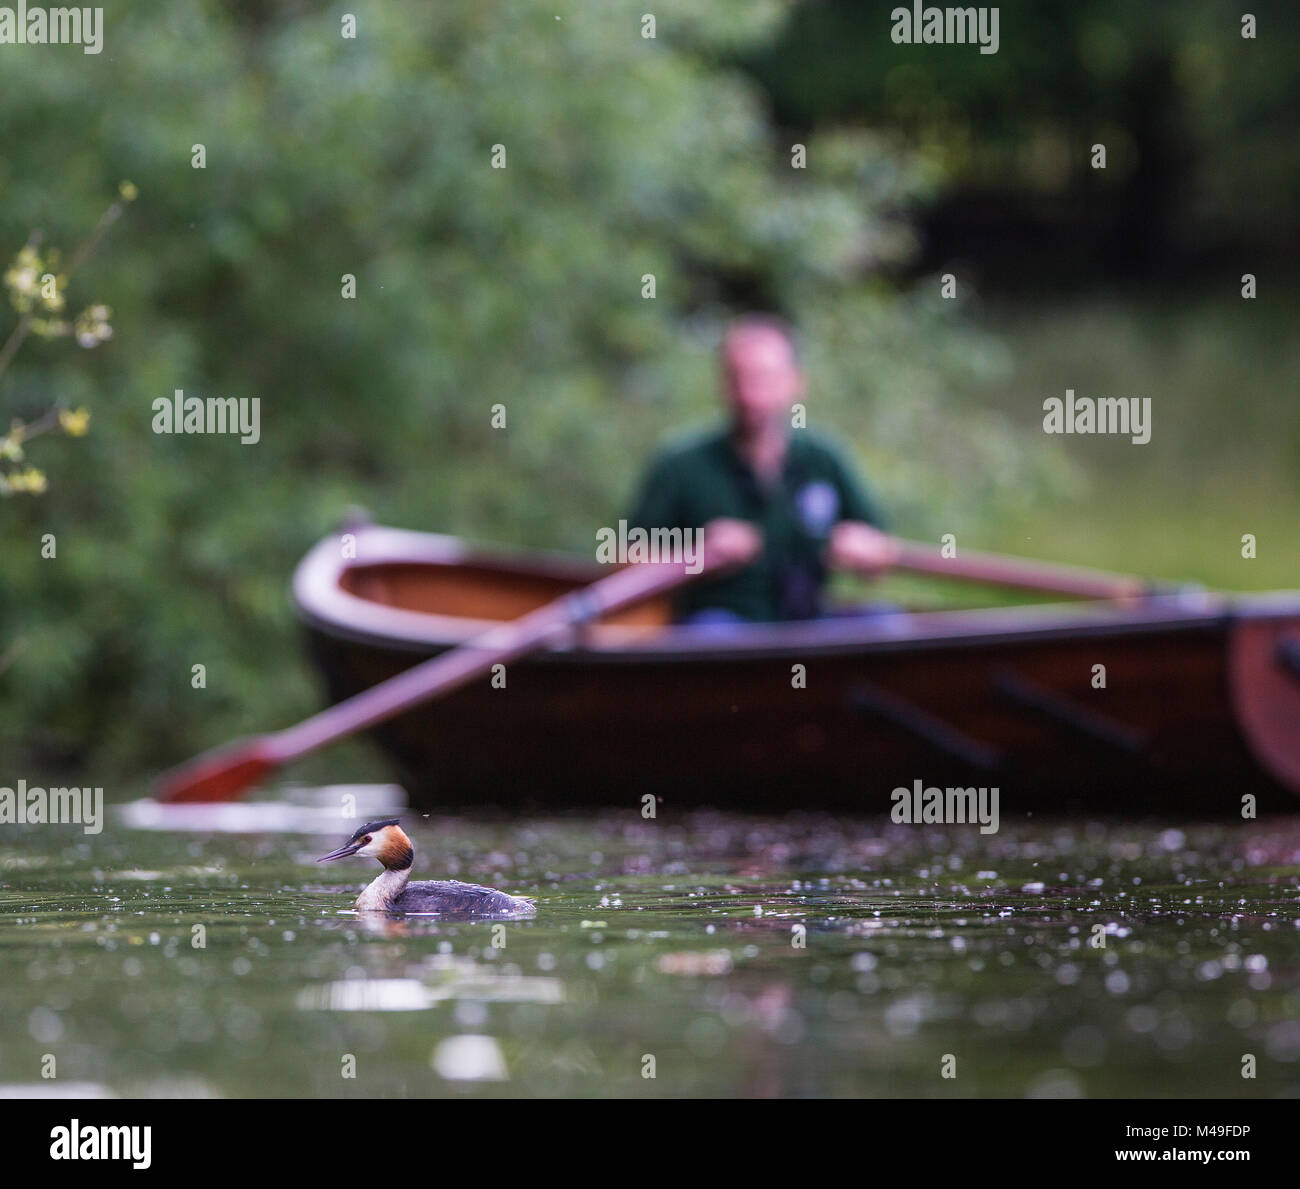 Great crested grebe (Podiceps cristatus) with rower in the background, Hampstead Heath, London, England, UK. June. - Stock Image